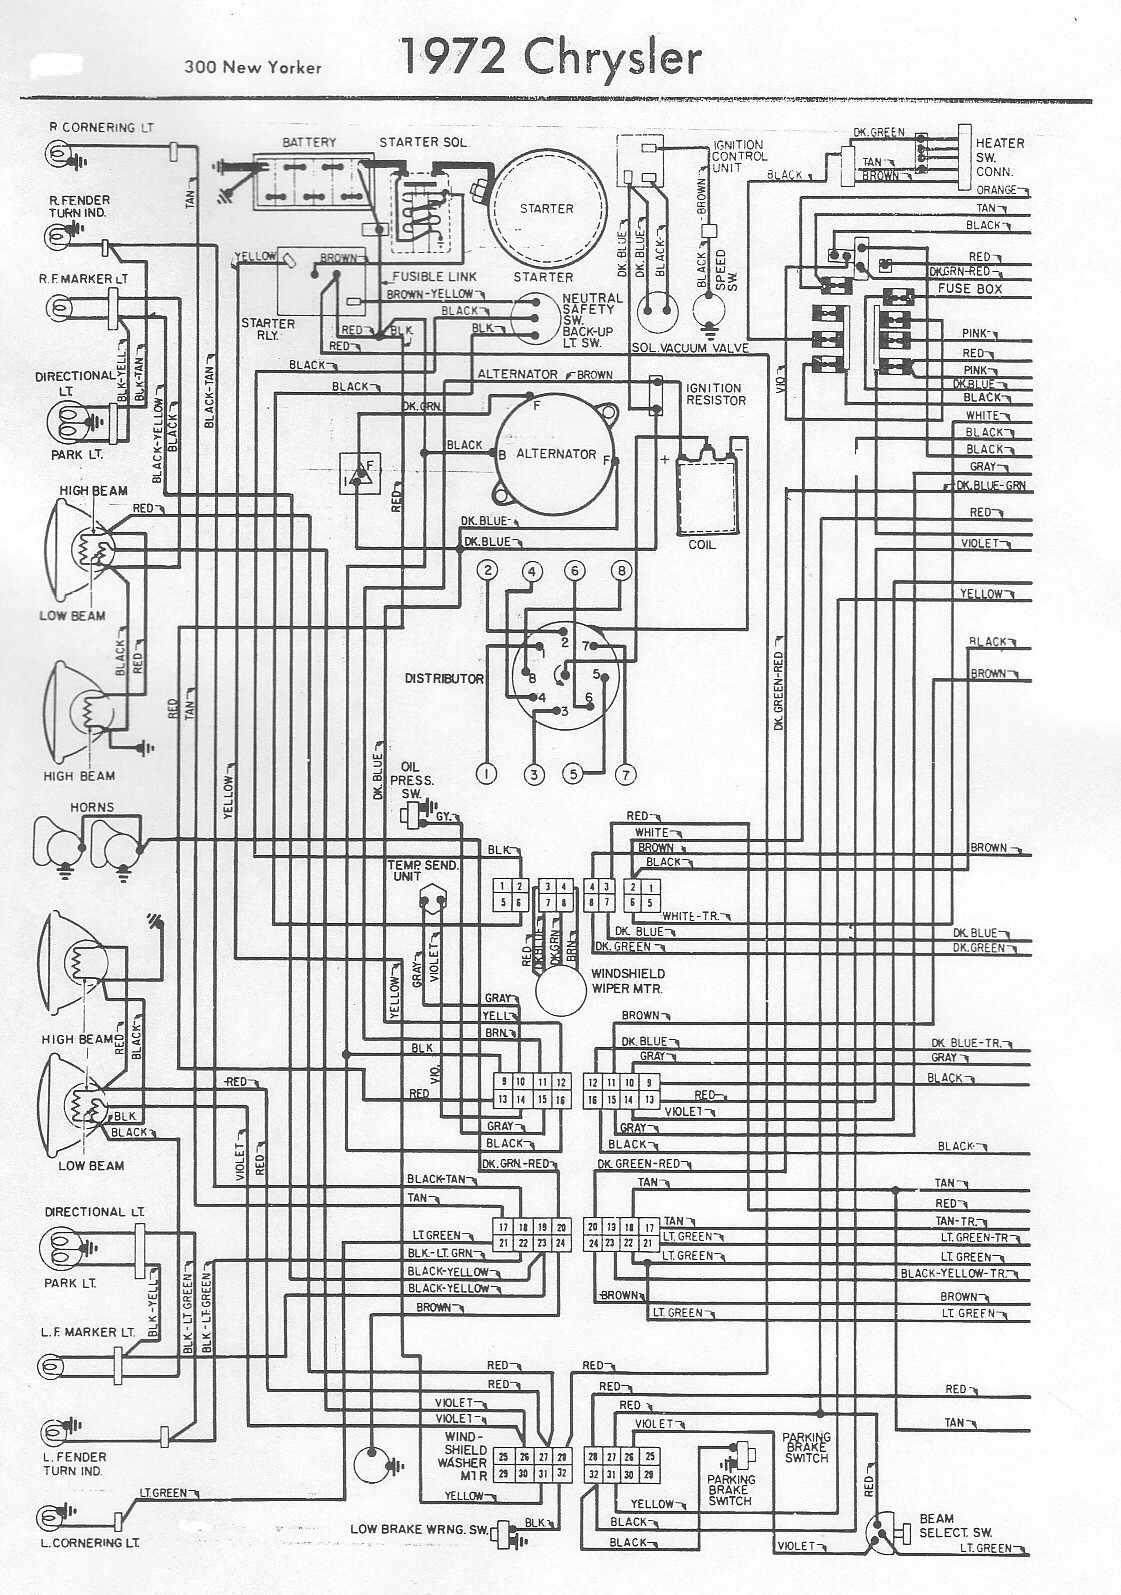 1956 Cadillac Wiring Diagram Schematic Diagrams 93 Chevy Suburban Wiring  Diagram 1956 Cadillac Wiring Diagram